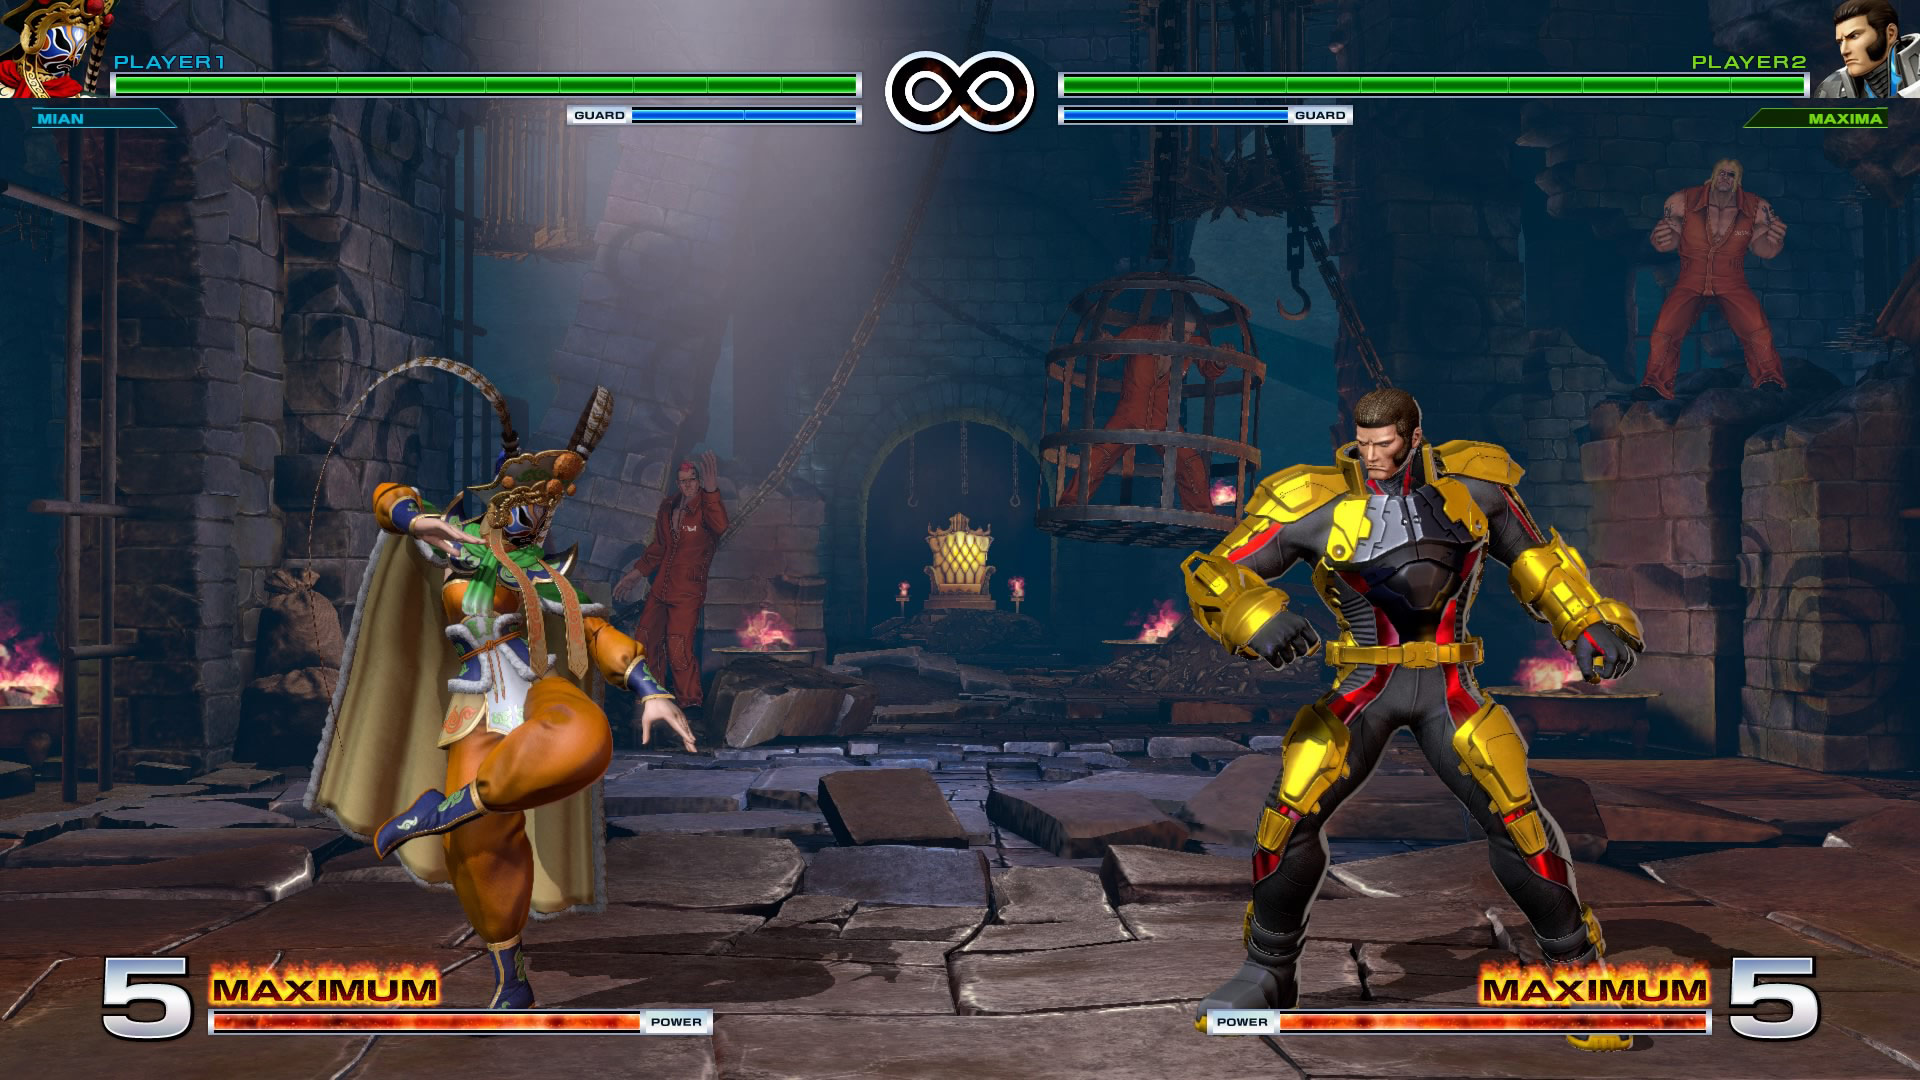 King of Fighters 14 1.10 graphics update 60 out of 60 image gallery